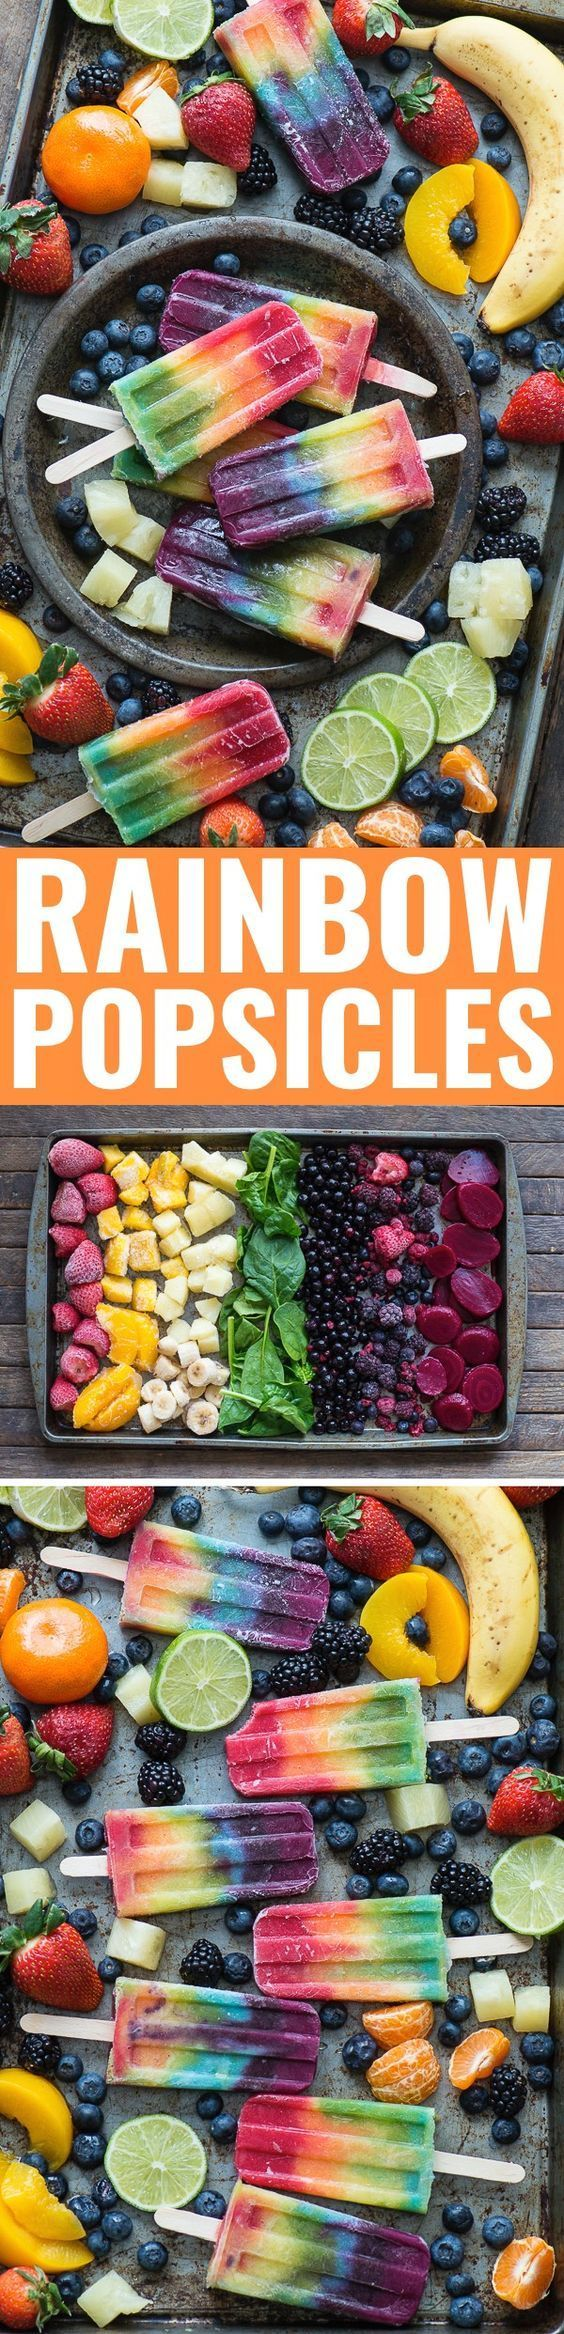 Make your own homemade rainbow popsicles with lots of fresh fruit! Colorful addition to a Spring party.